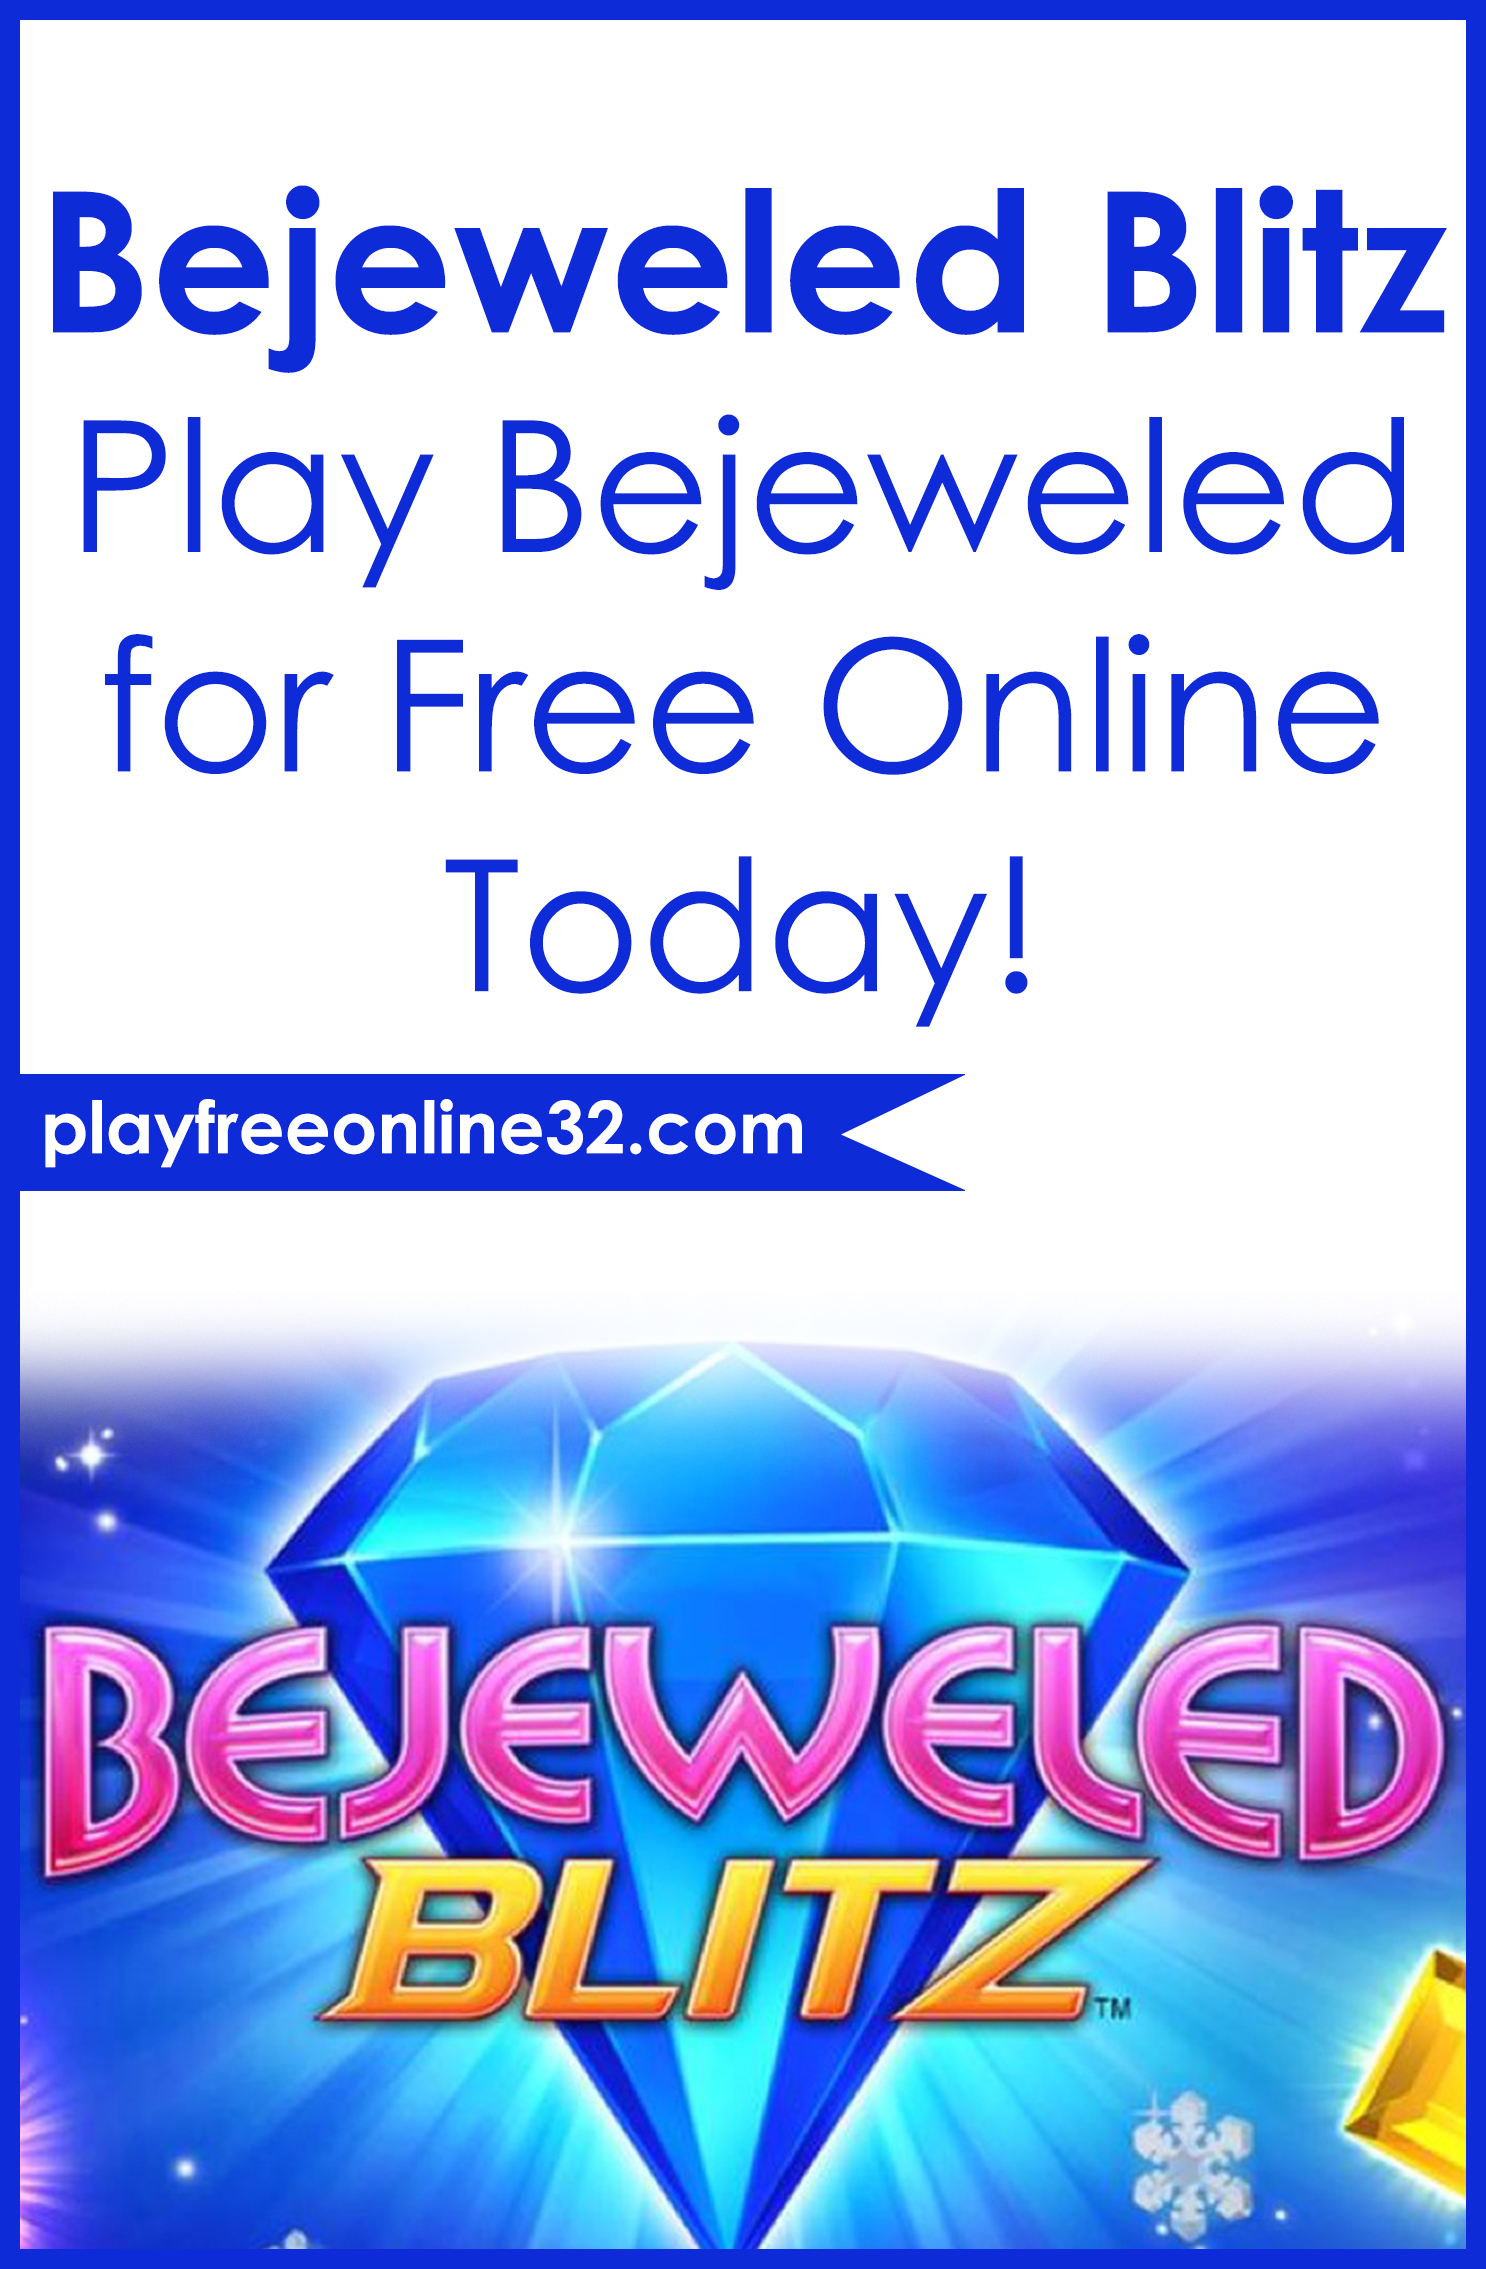 Bejeweled Blitz • Play Bejeweled for Free Online Today!